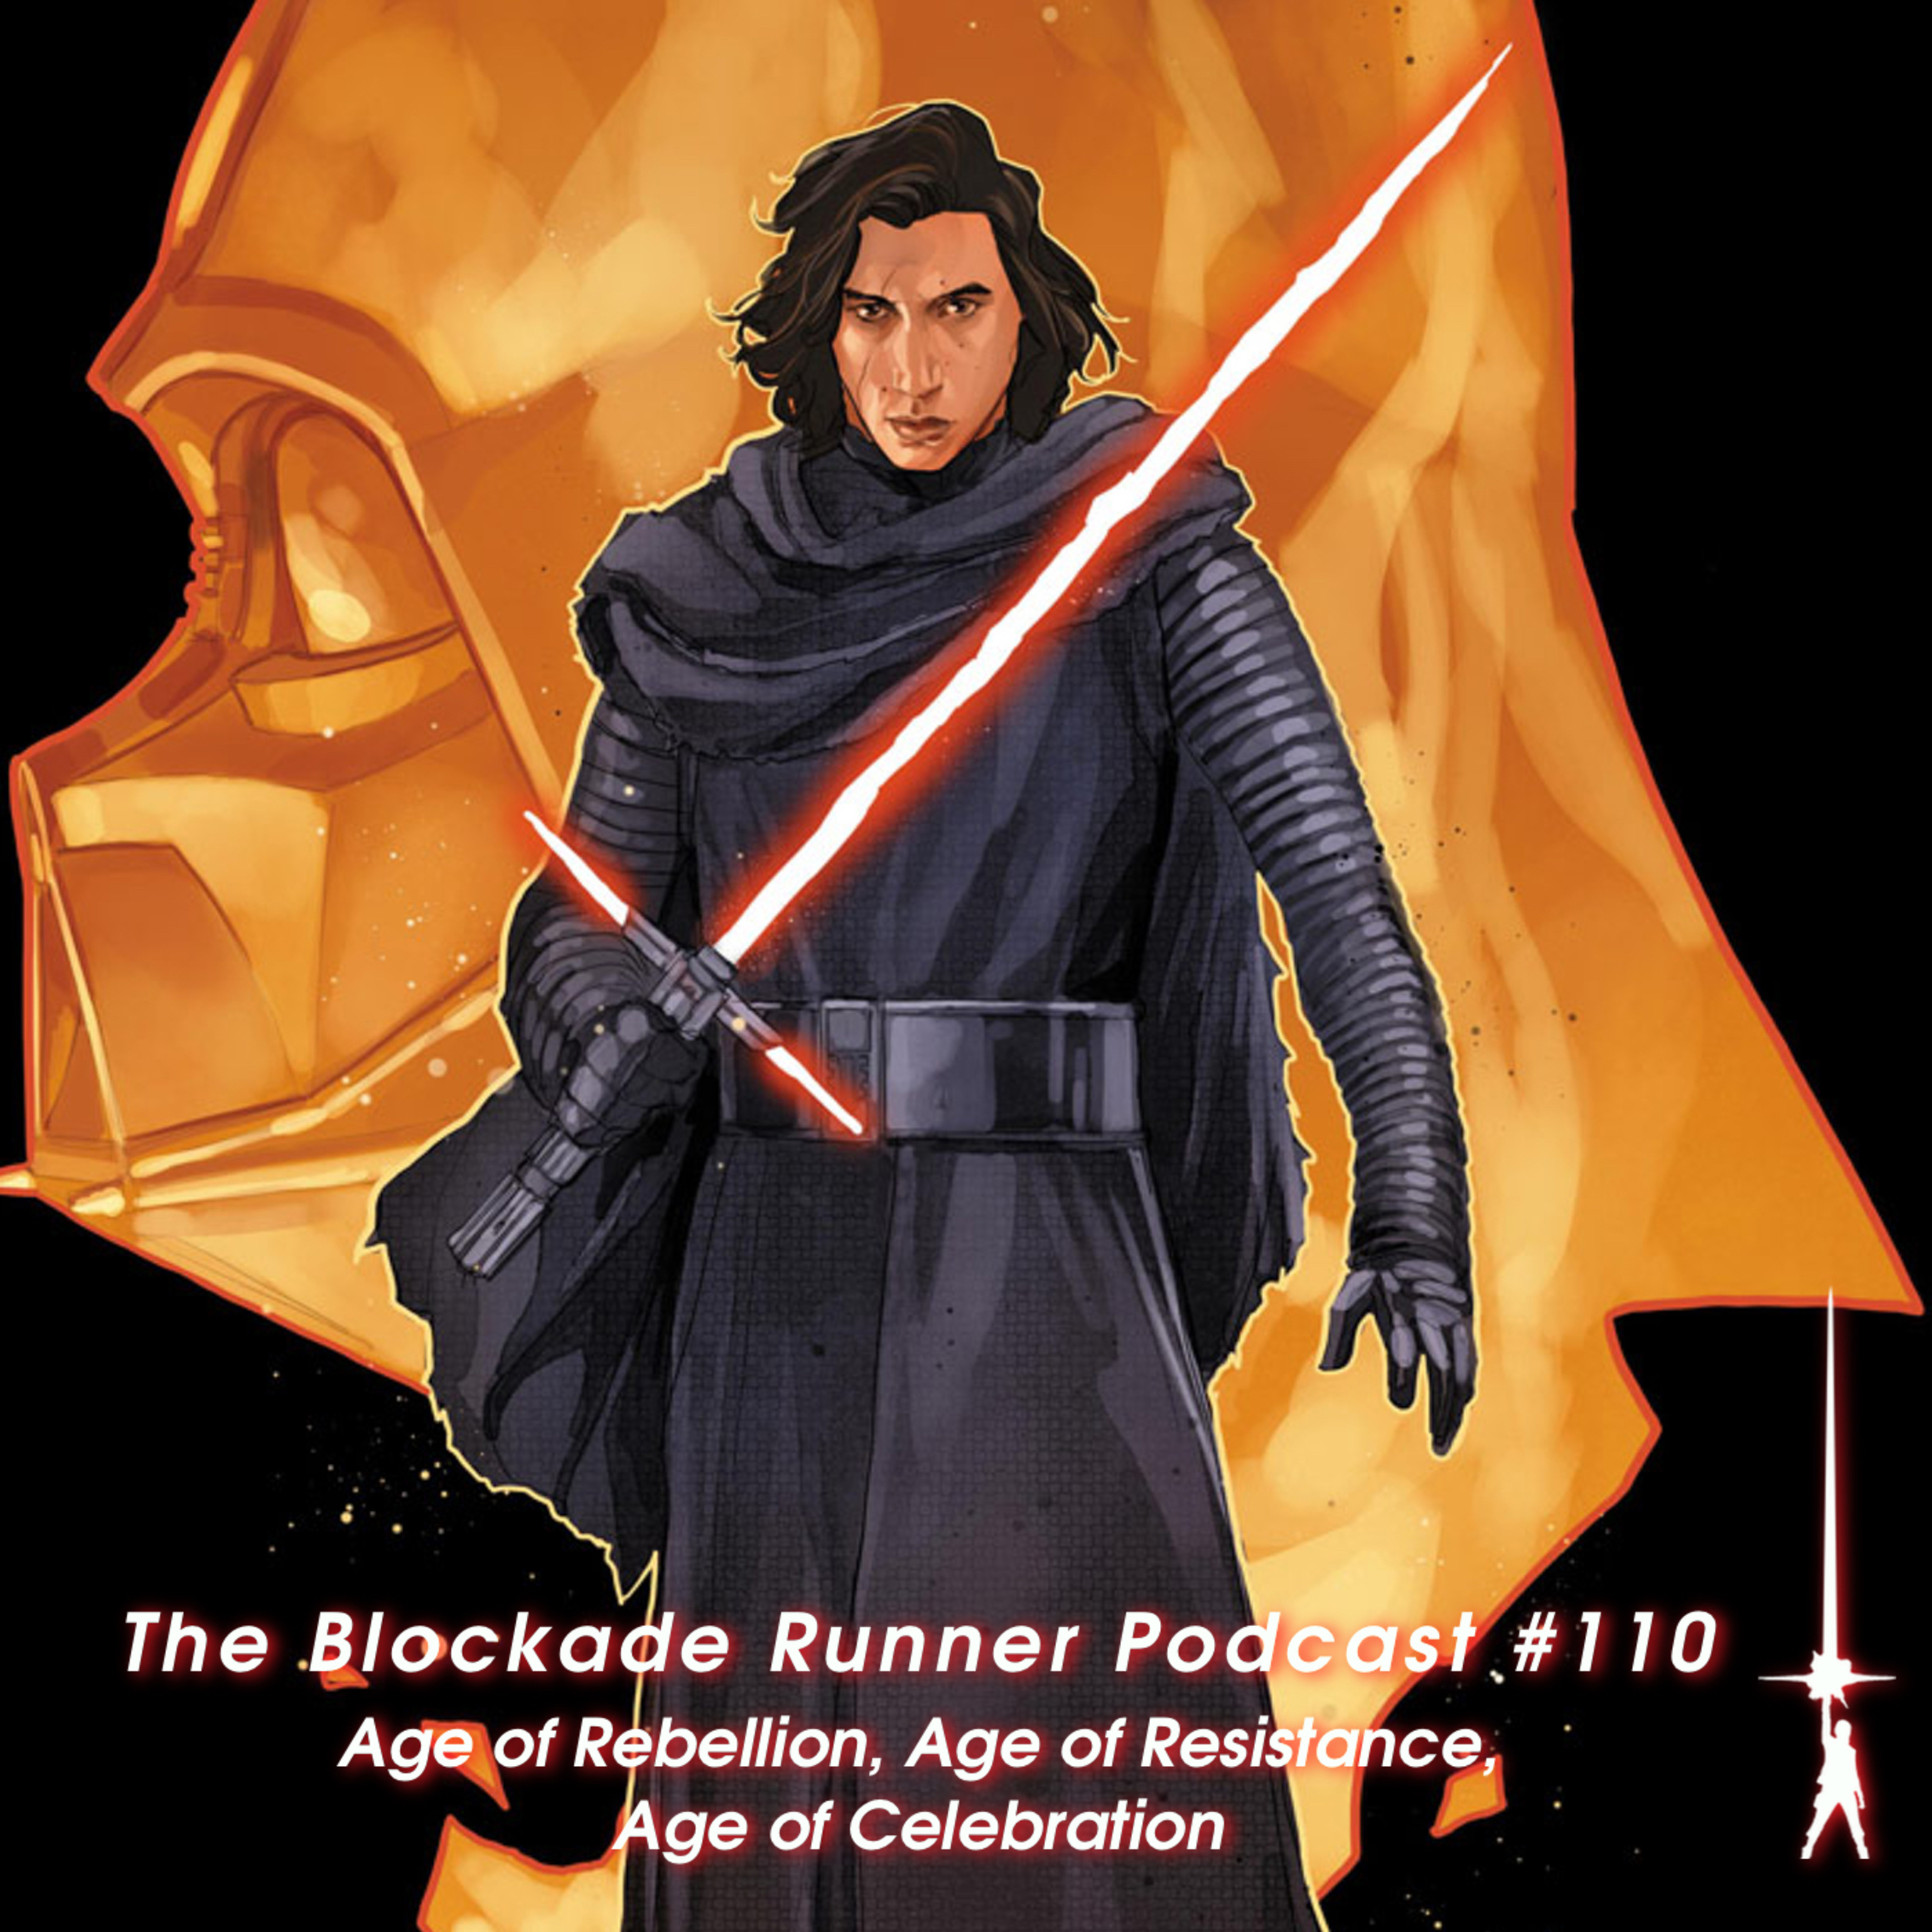 Age of Rebellion, Age of Resistance, Age of Celebration - The Blockade Runner Podcast #110